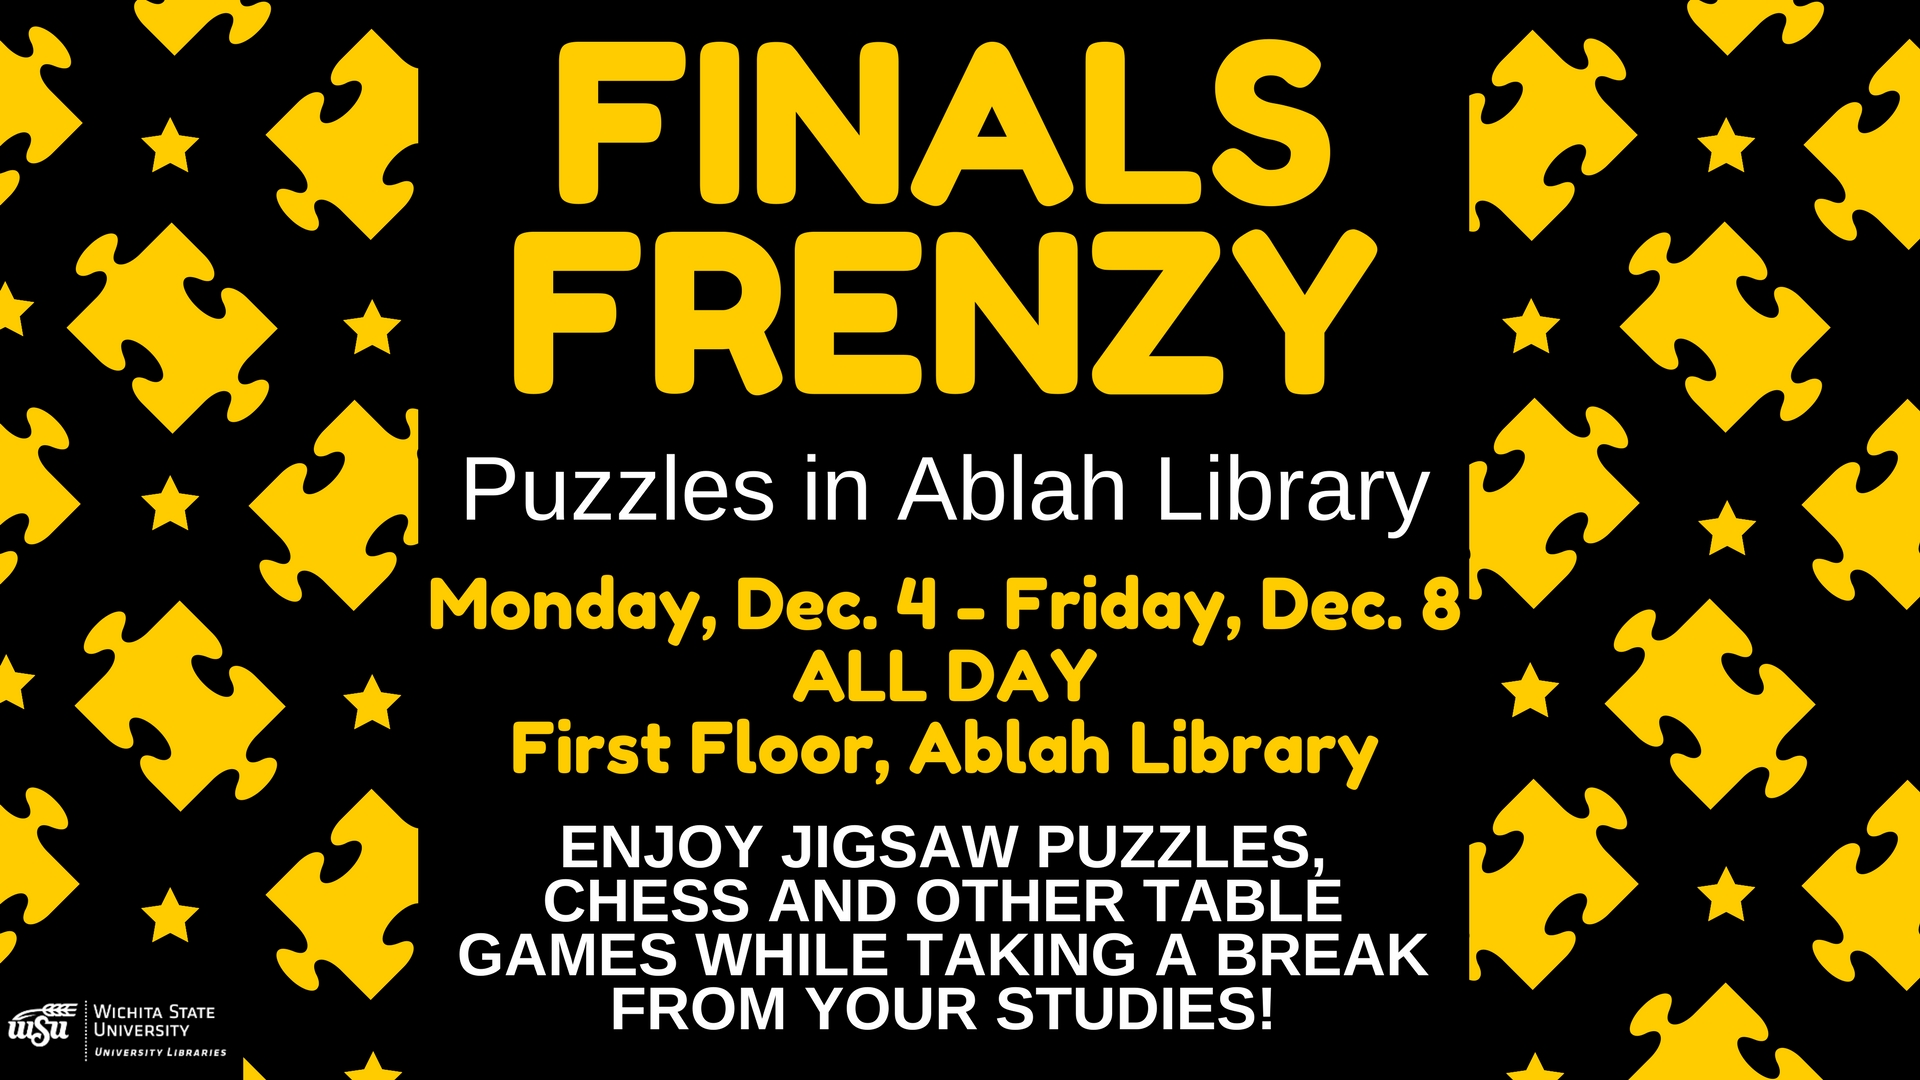 Finals Frenzy: Puzzles in Ablah Library